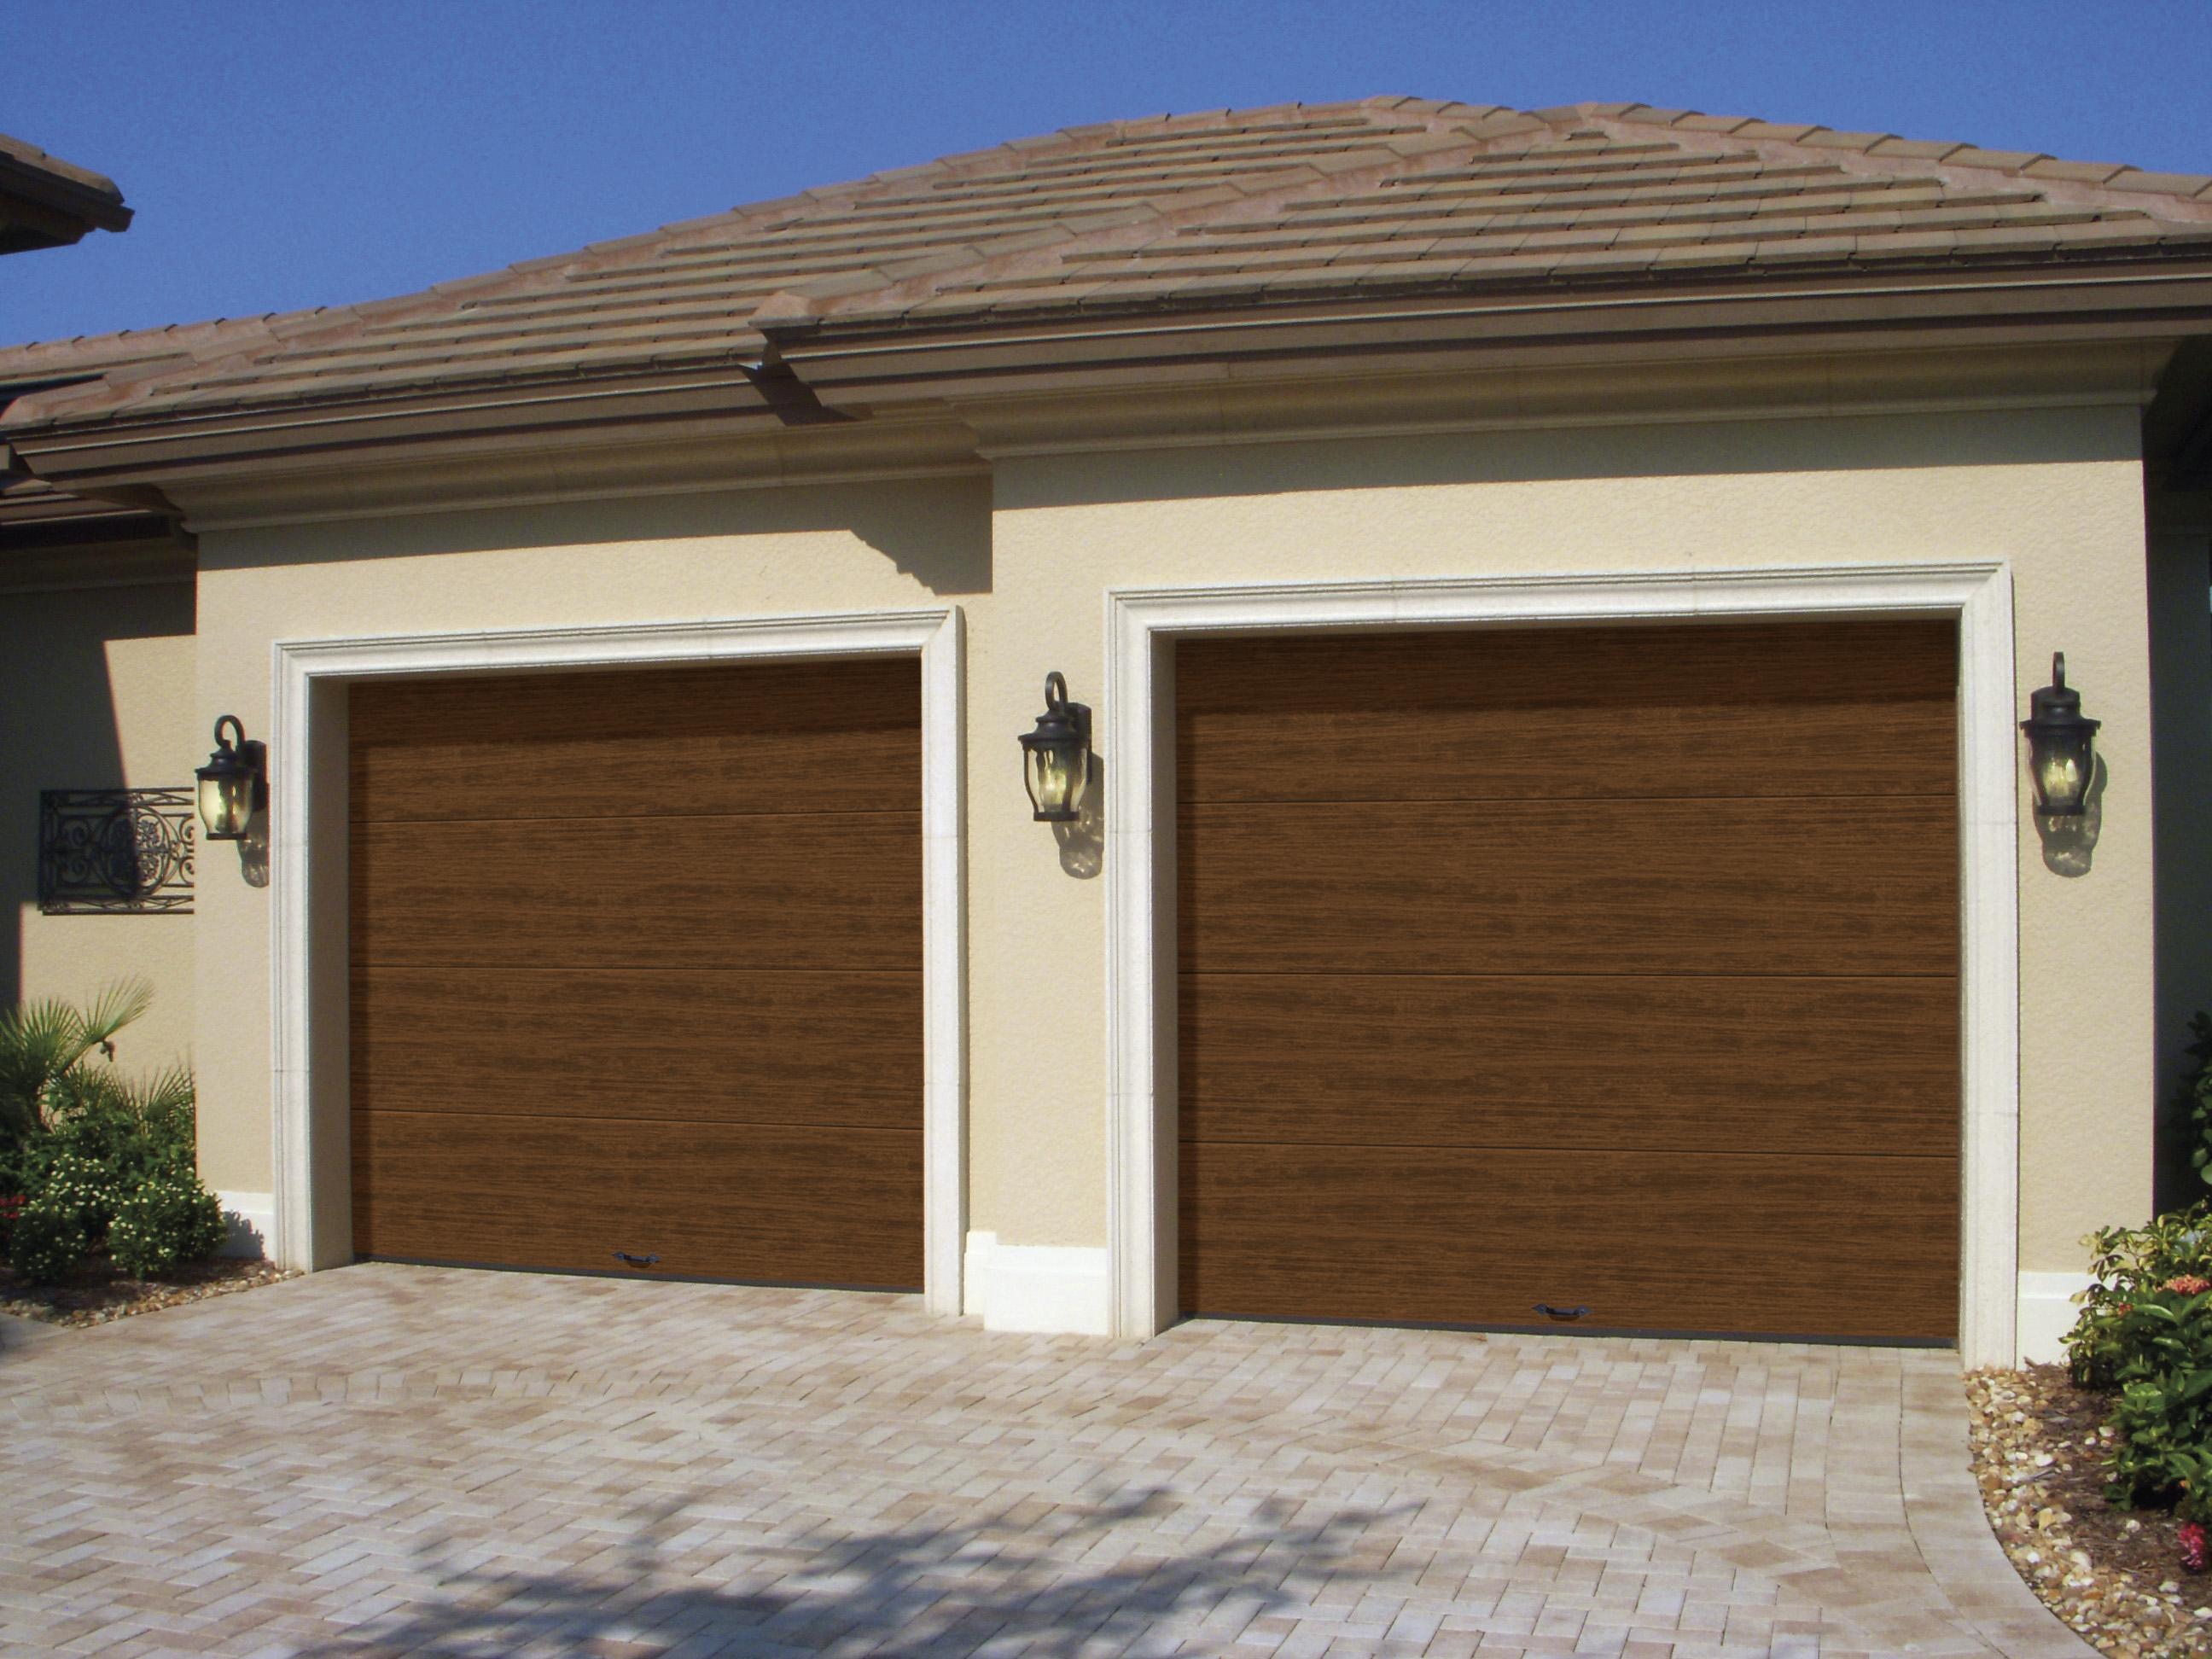 Clopay Introduces Cypress Collection Insulated Flush Steel Garage Doors With Ultra Grain Paint Finish